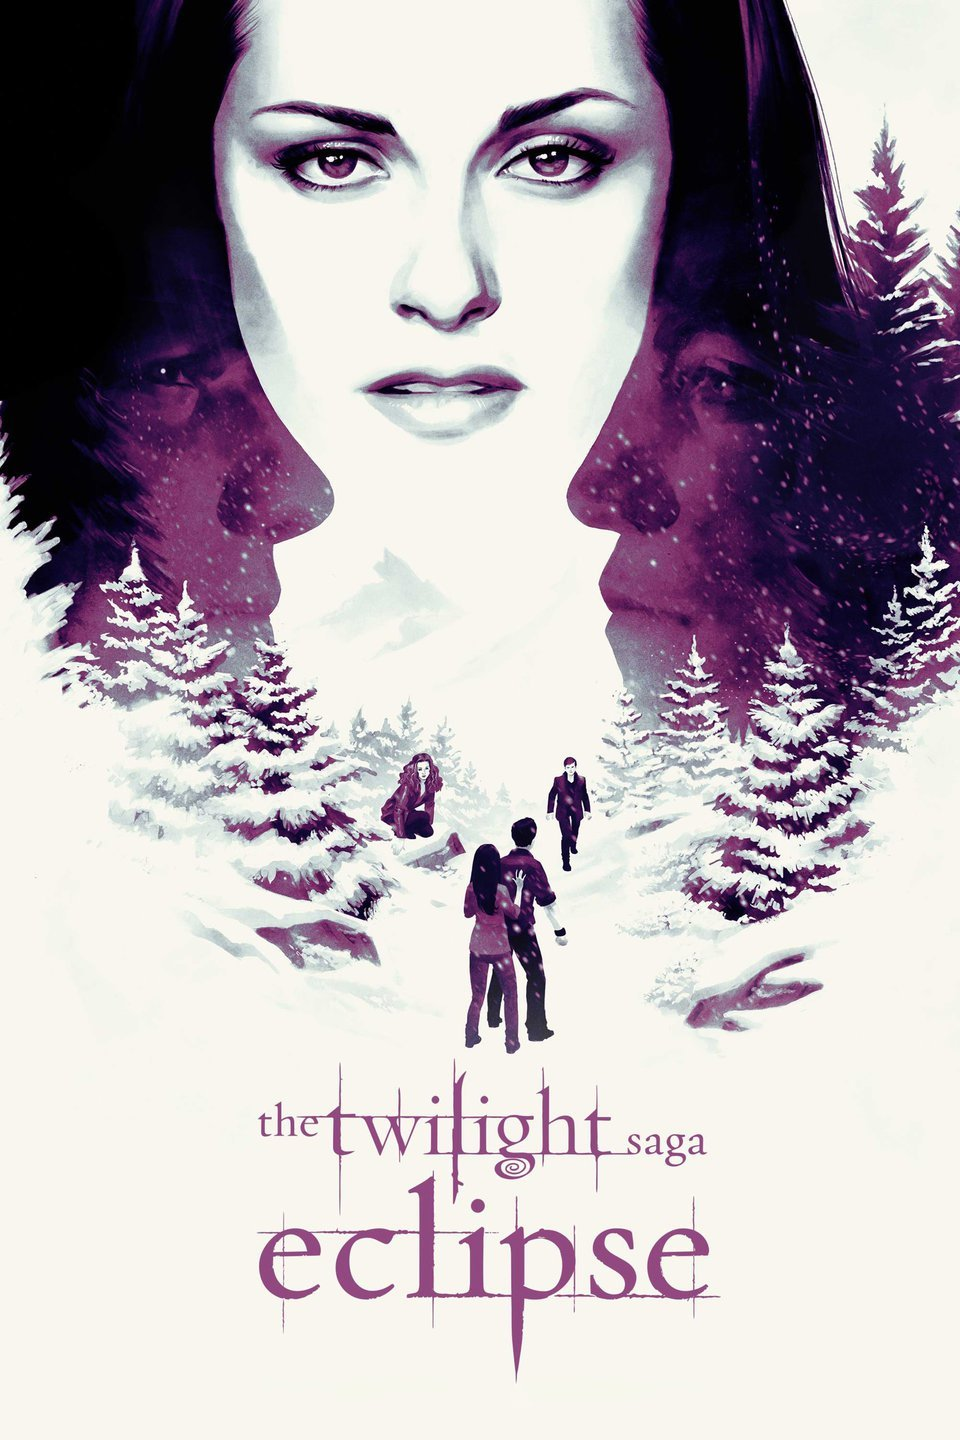 The Twilight Saga Eclipse 2010 7starhd